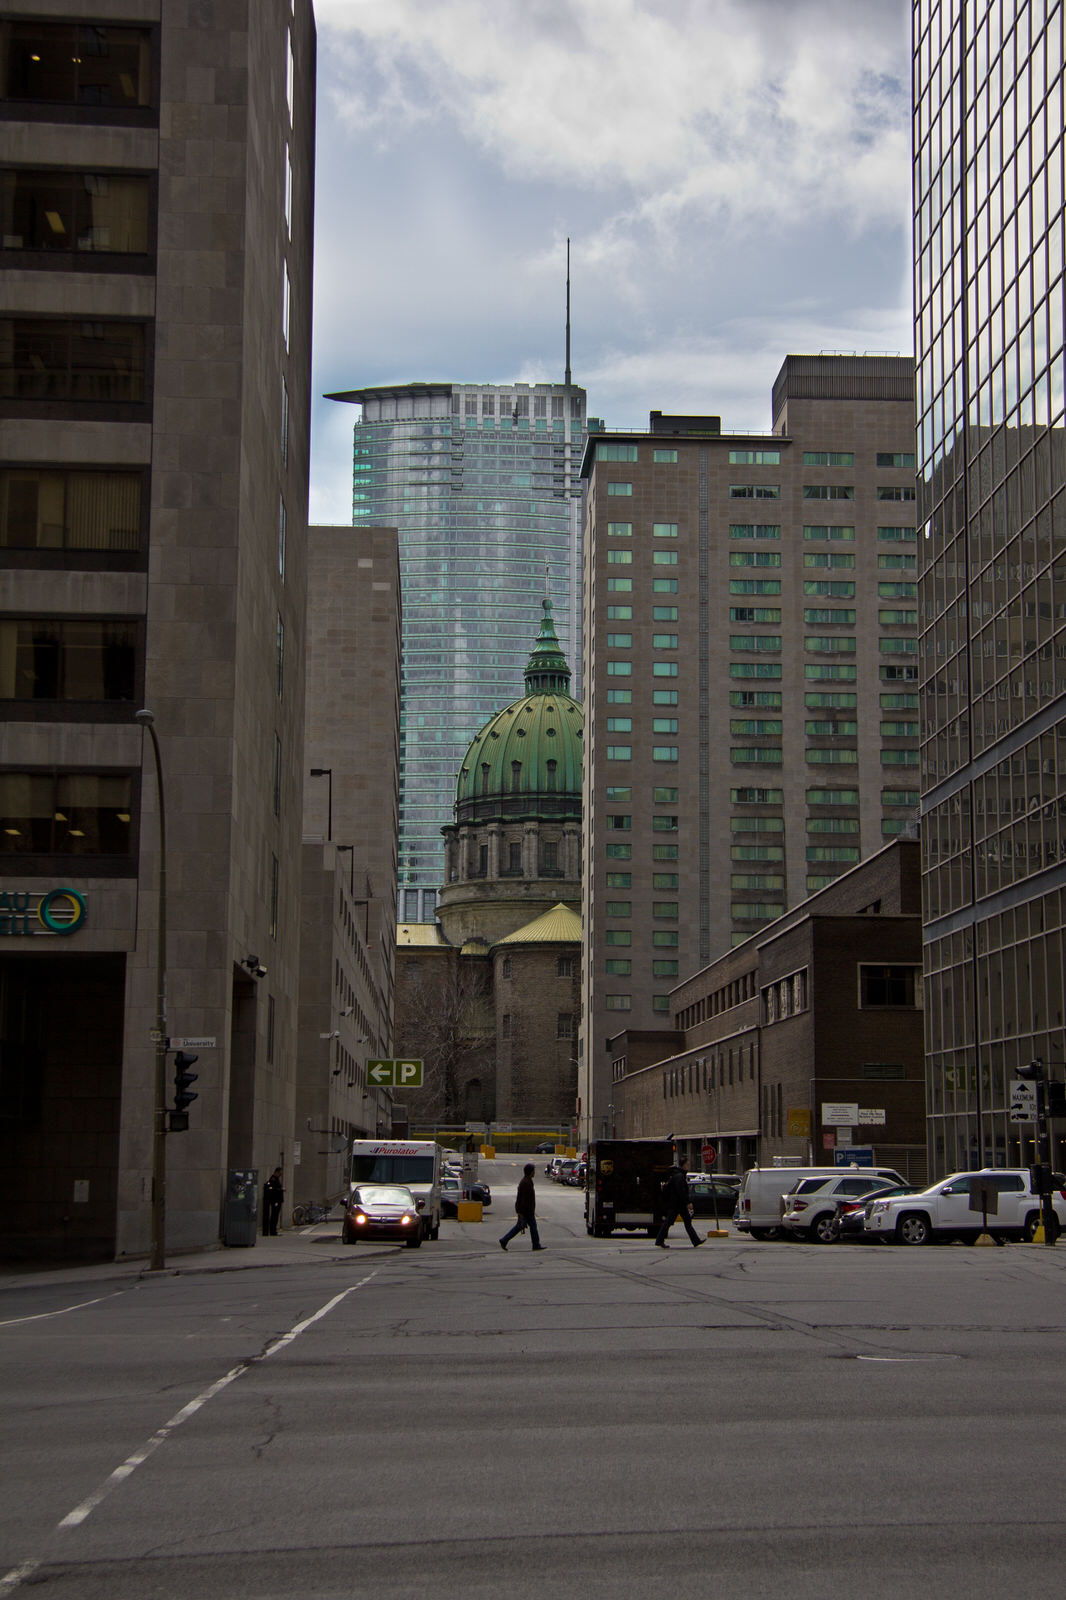 Montréal Streets - Old and new - Visuelles Logbuch